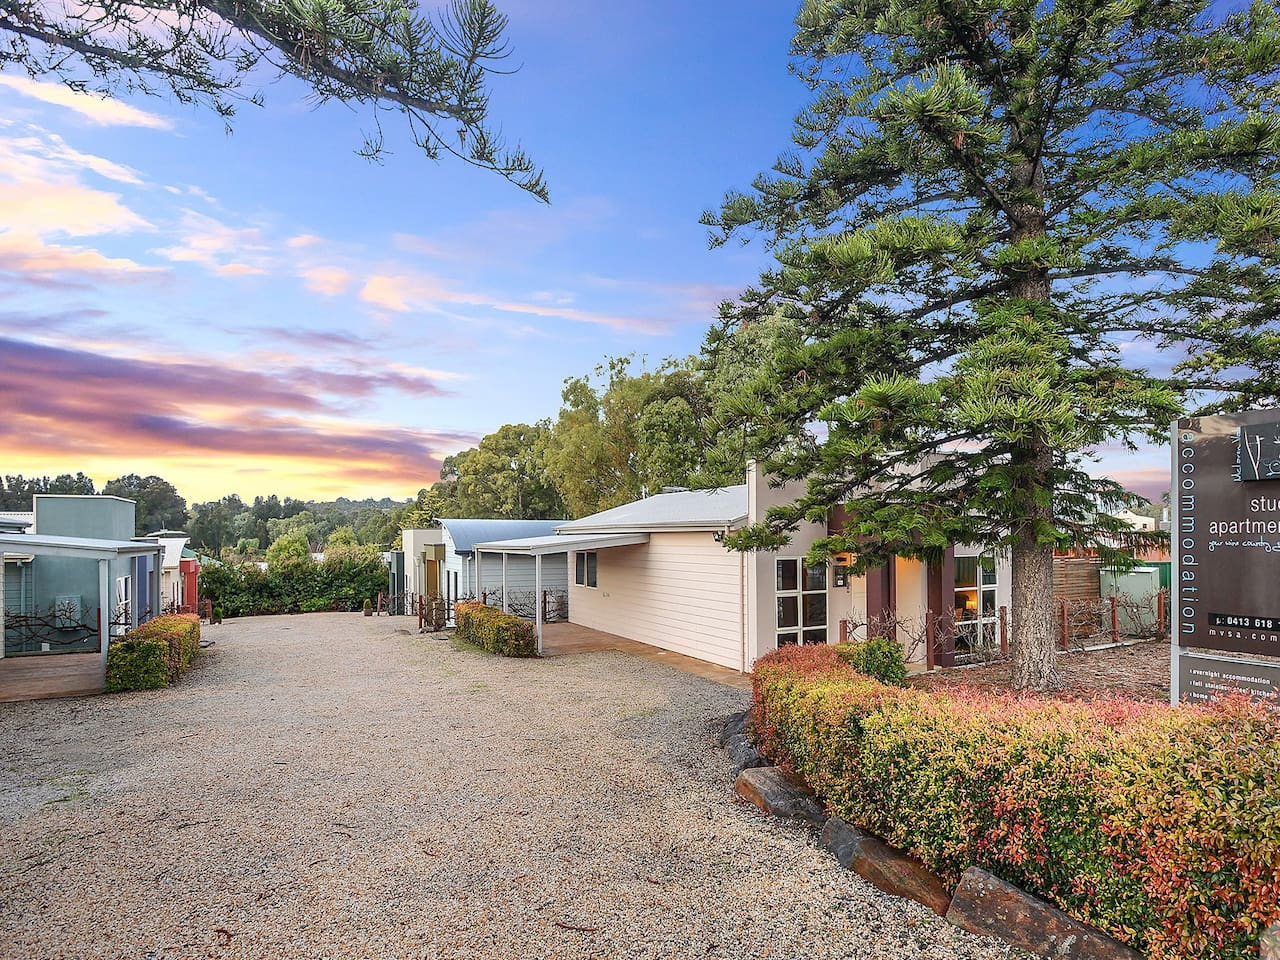 Our group of 6 individual Units offer comfort and amazing location for a self-catered exploration of the McLaren Vale wine region